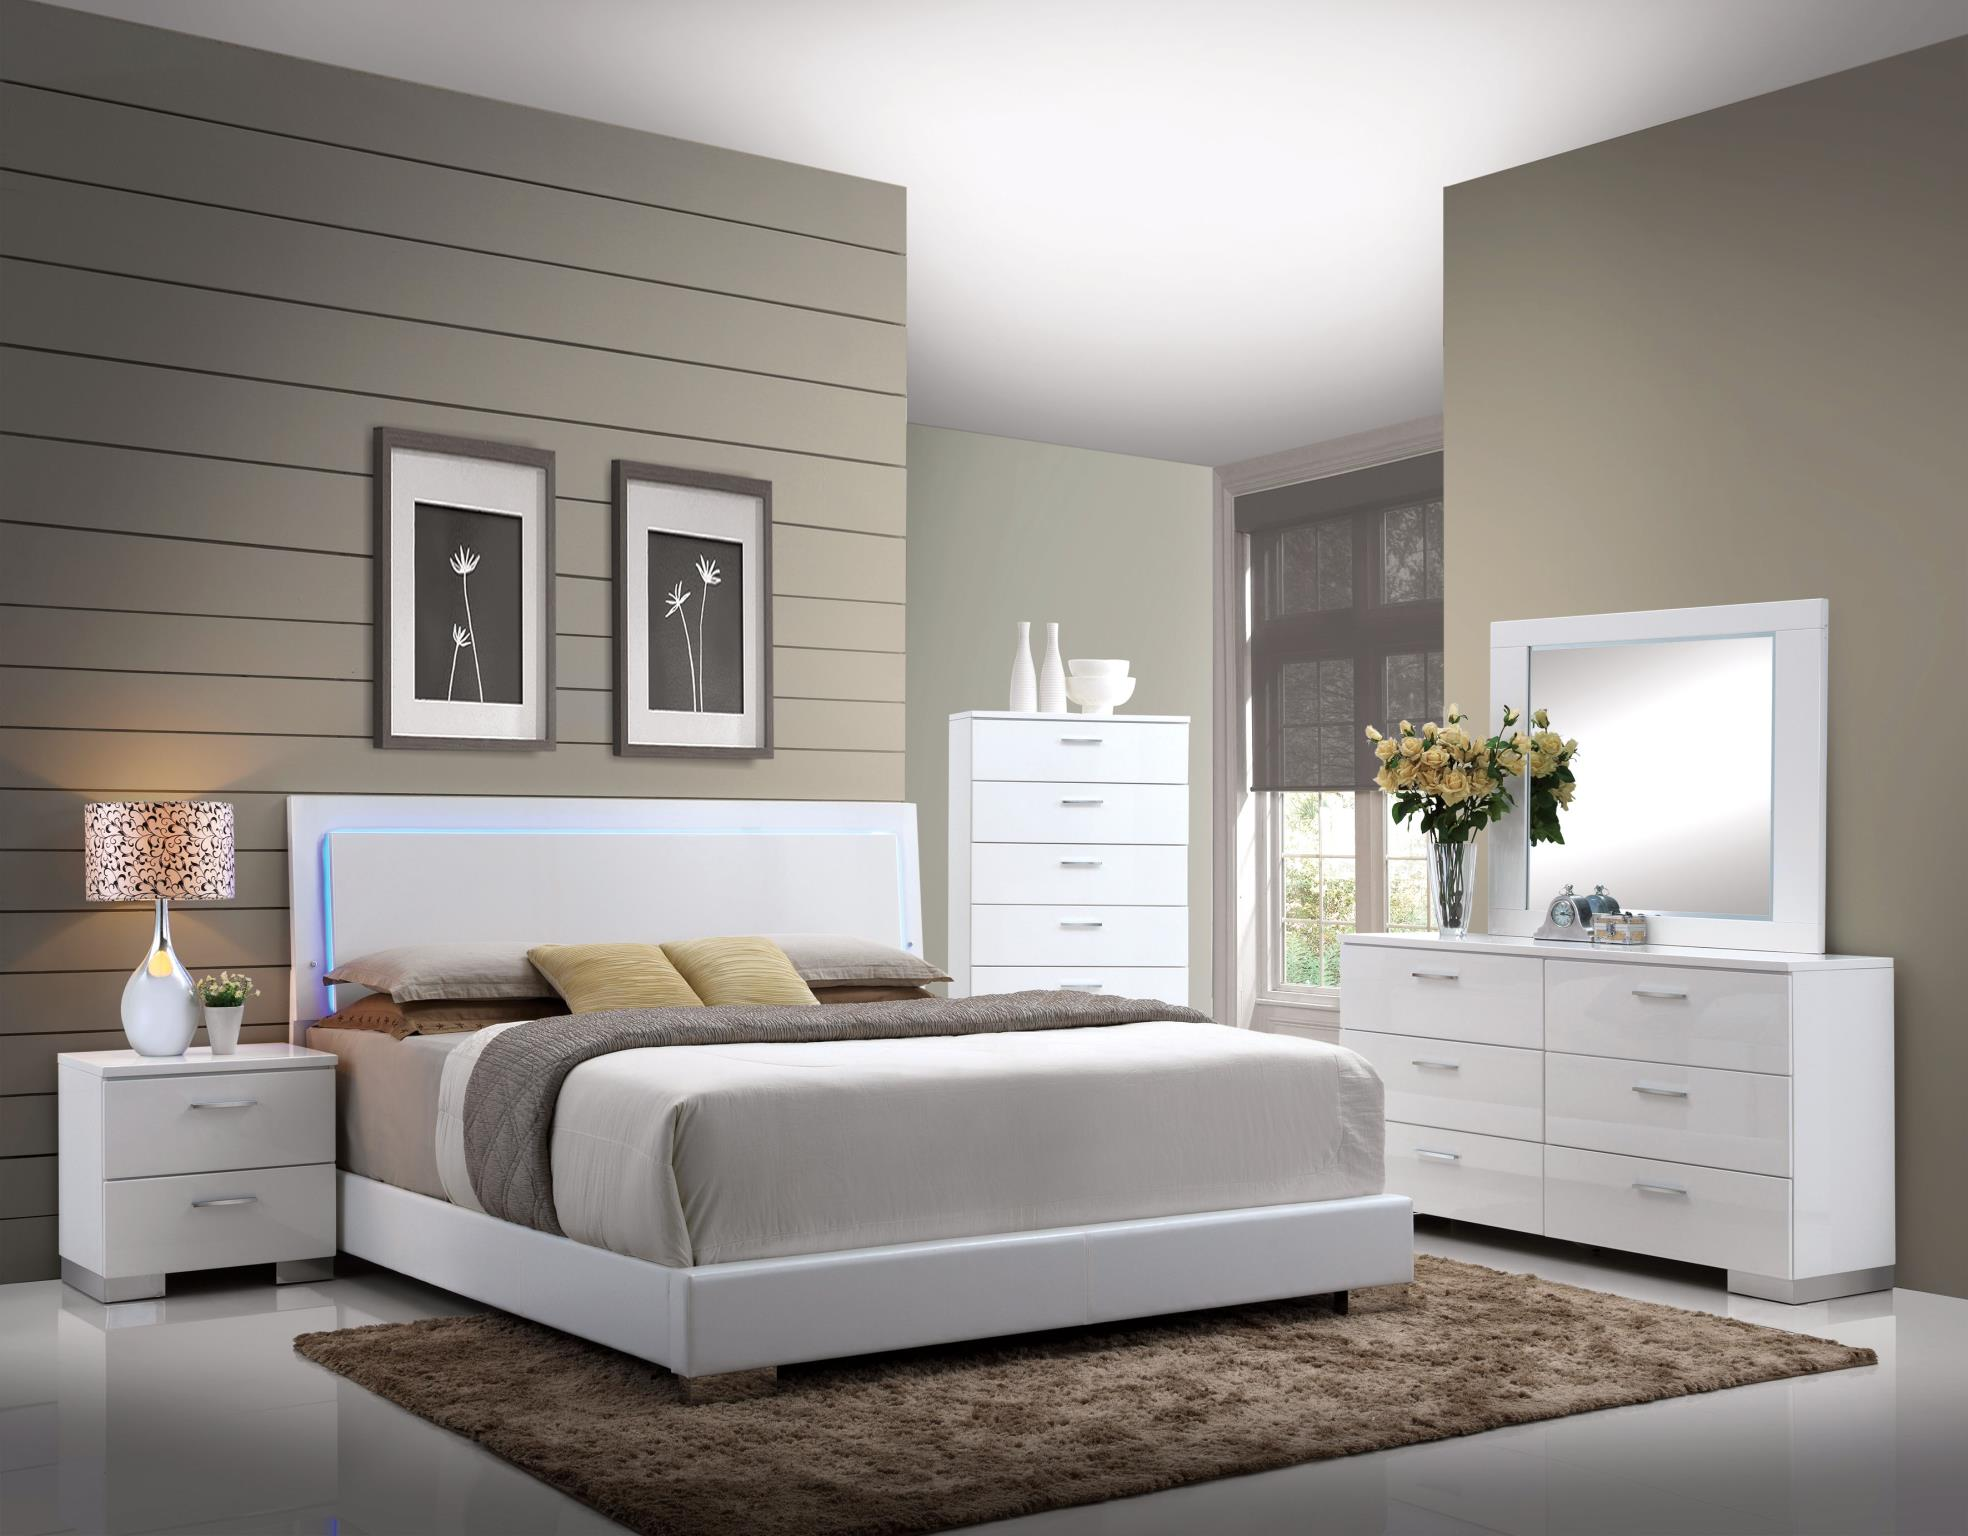 Complete Bed Set w/ LED Headboard